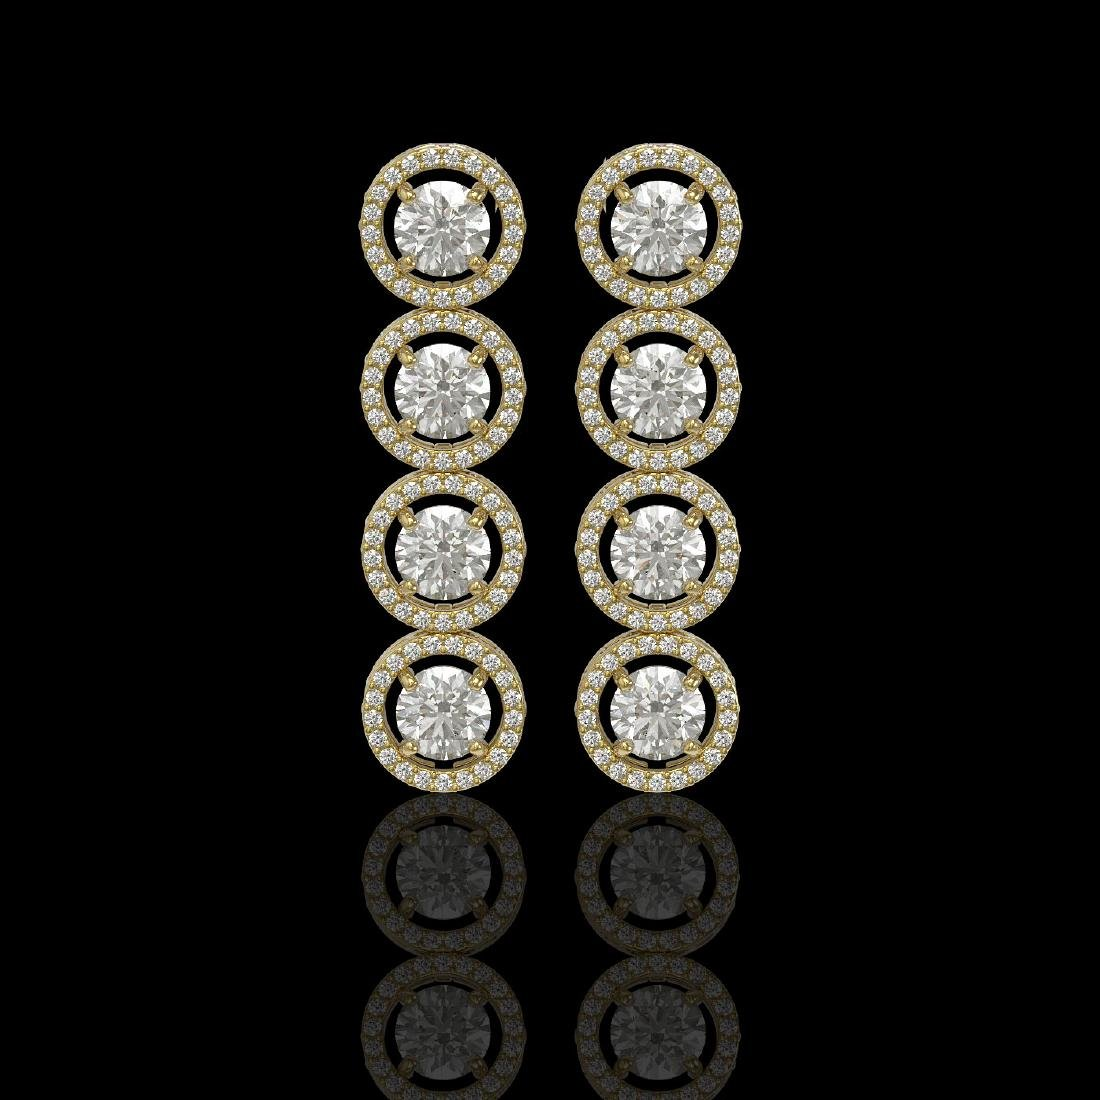 5.36 CTW Diamond Designer Earrings 18K Yellow Gold